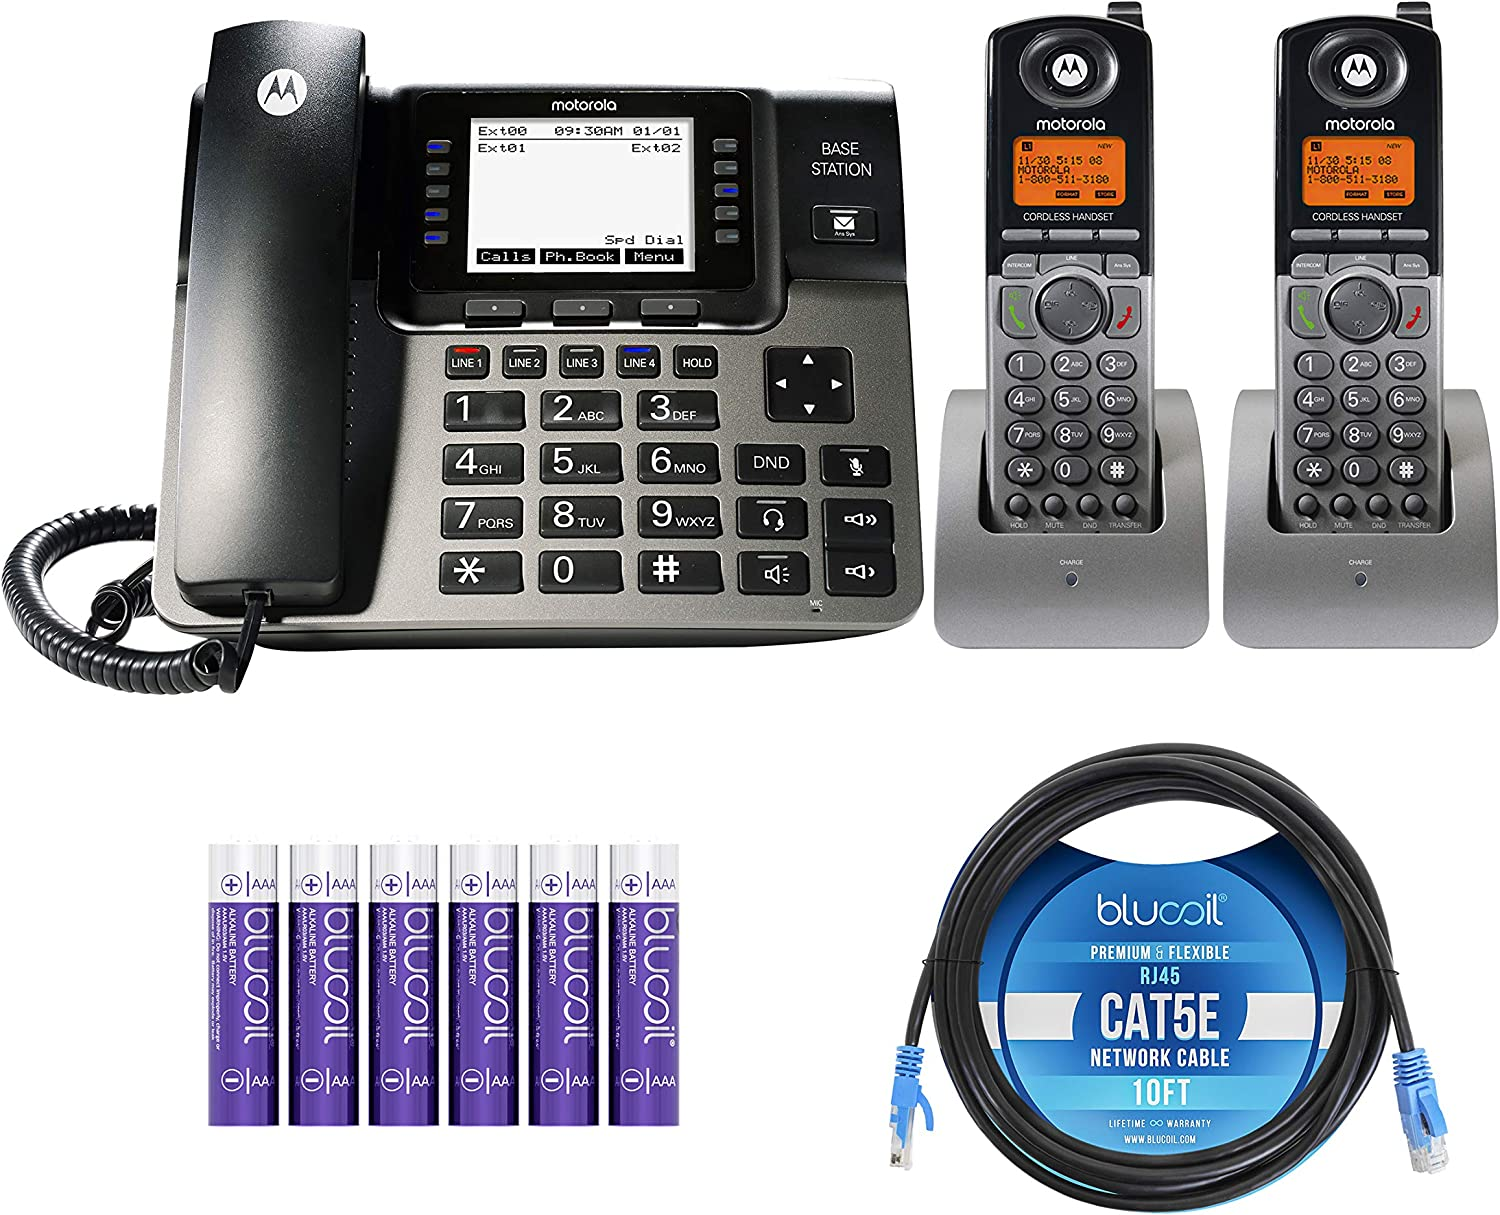 Motorola ML1002H (ML1000 x1, ML1200 x2) DECT 6.0 Expandable 4-Line Business Phone System with Digital Receptionist and Answering System Bundle with Blucoil 10-FT Cat5e Cable, and 6 AAA Batteries